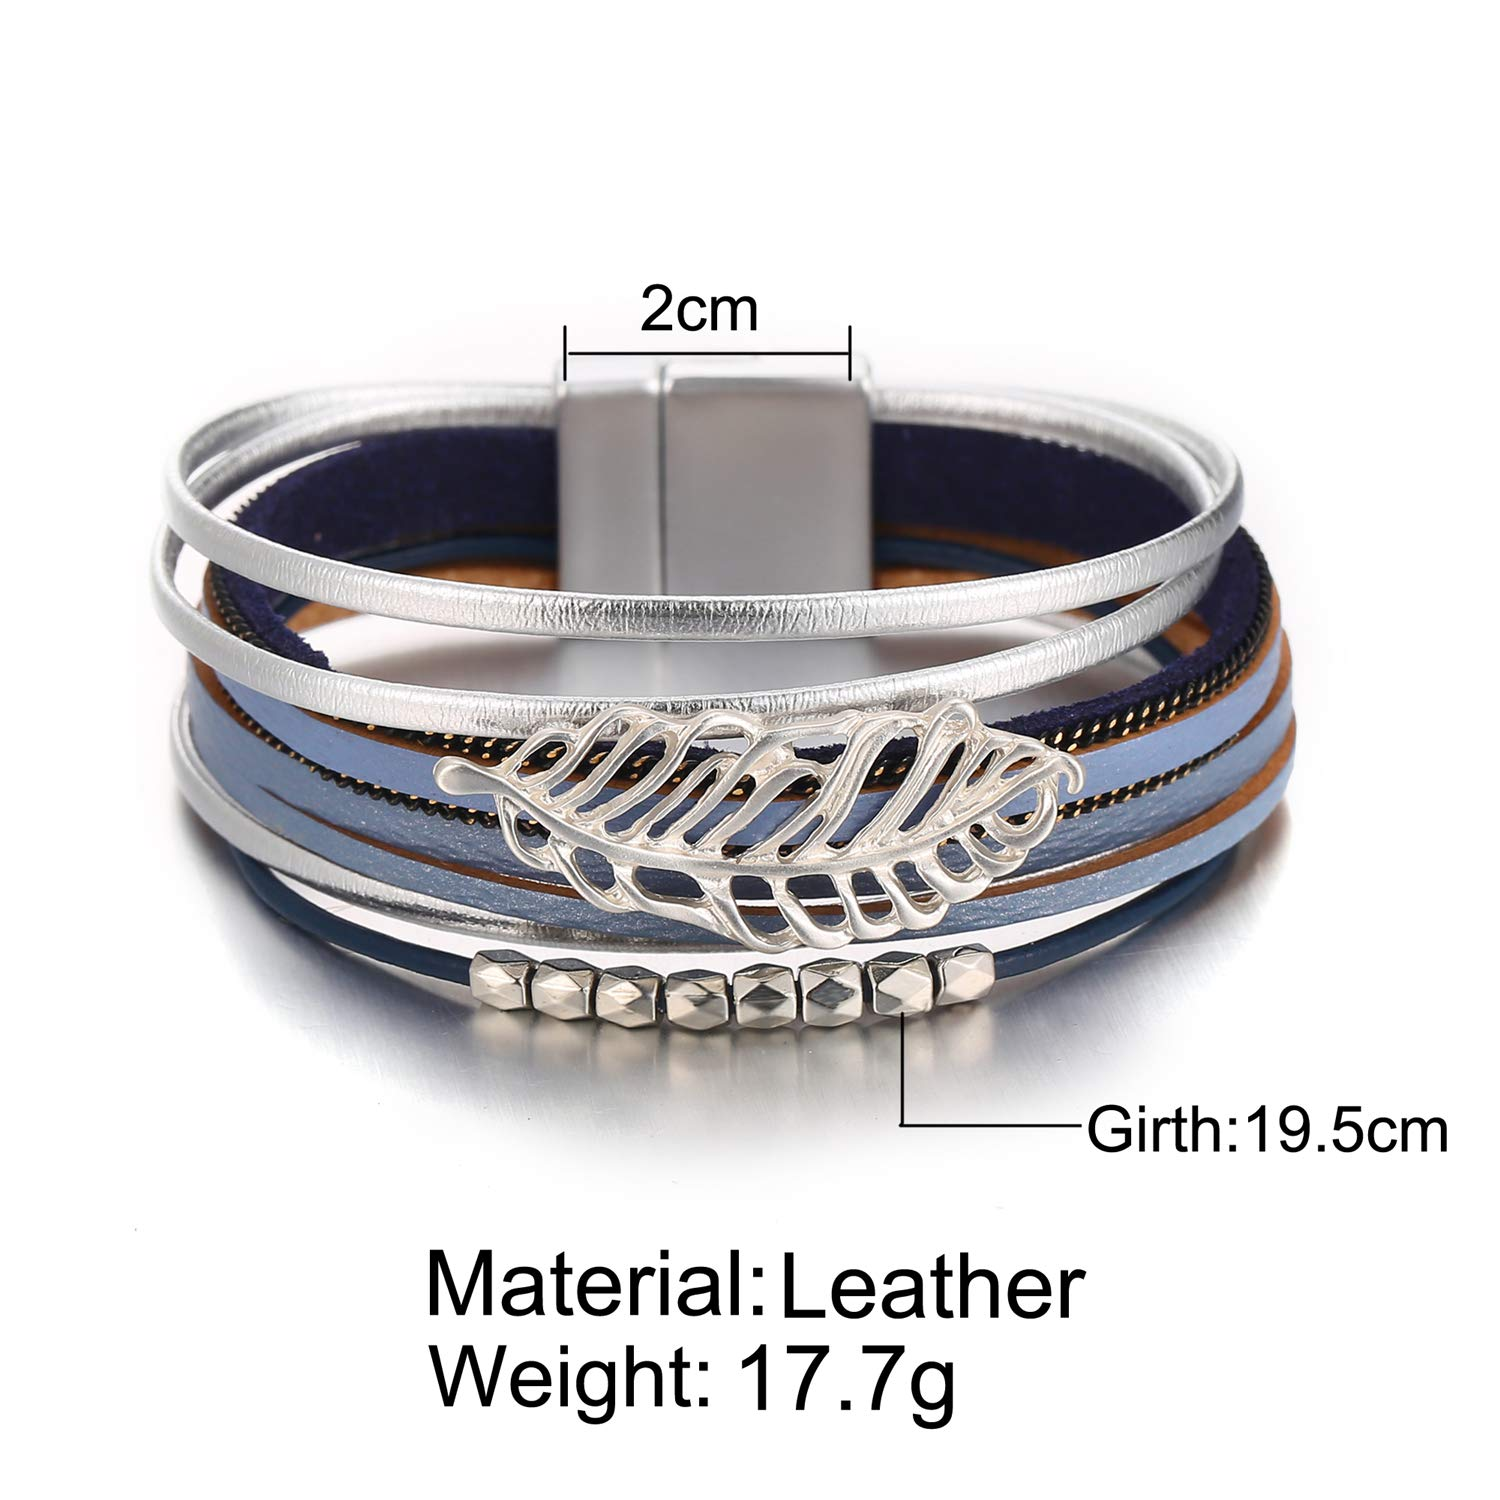 FAXHION Multi-Layer Wrap Leather Bracelet Magnet Buckle Handmade Boho Cuff Bracelet Jewelry for Women and Girls Gift